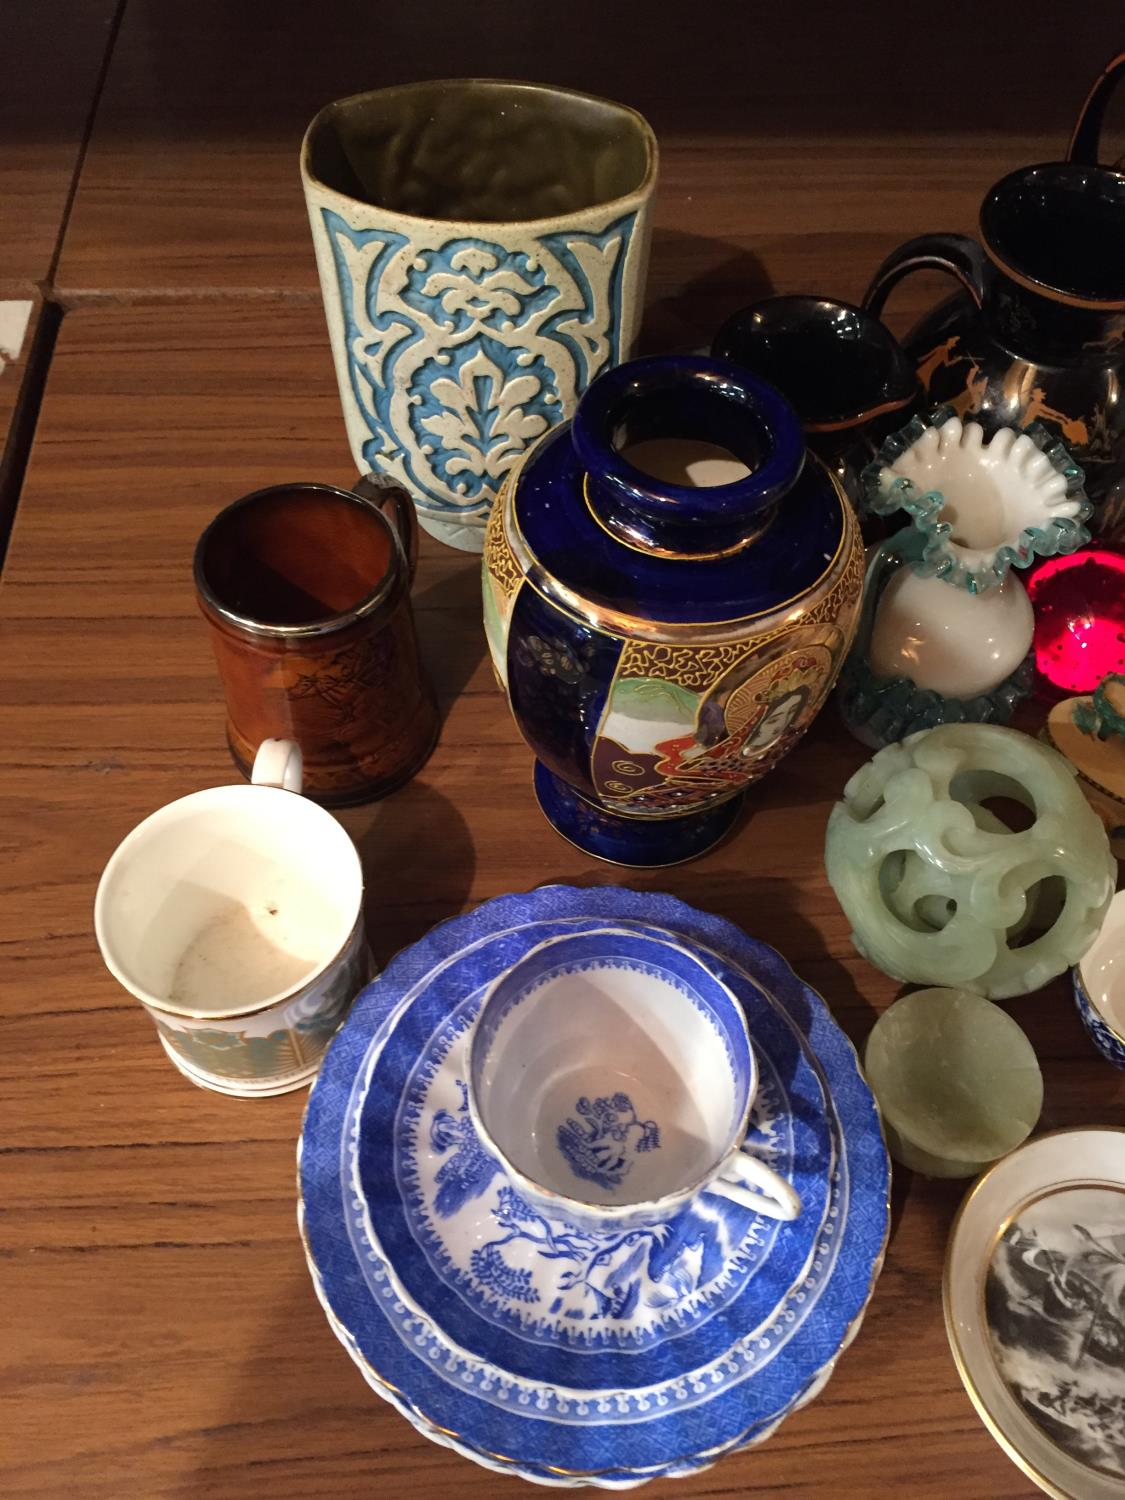 A COLLECTION OF CERAMICS TO INCLUDE BESWICK, WORCESTER PIN TRAYS CIGARETTE CARDS, POSTCARDS ETC - Image 3 of 10